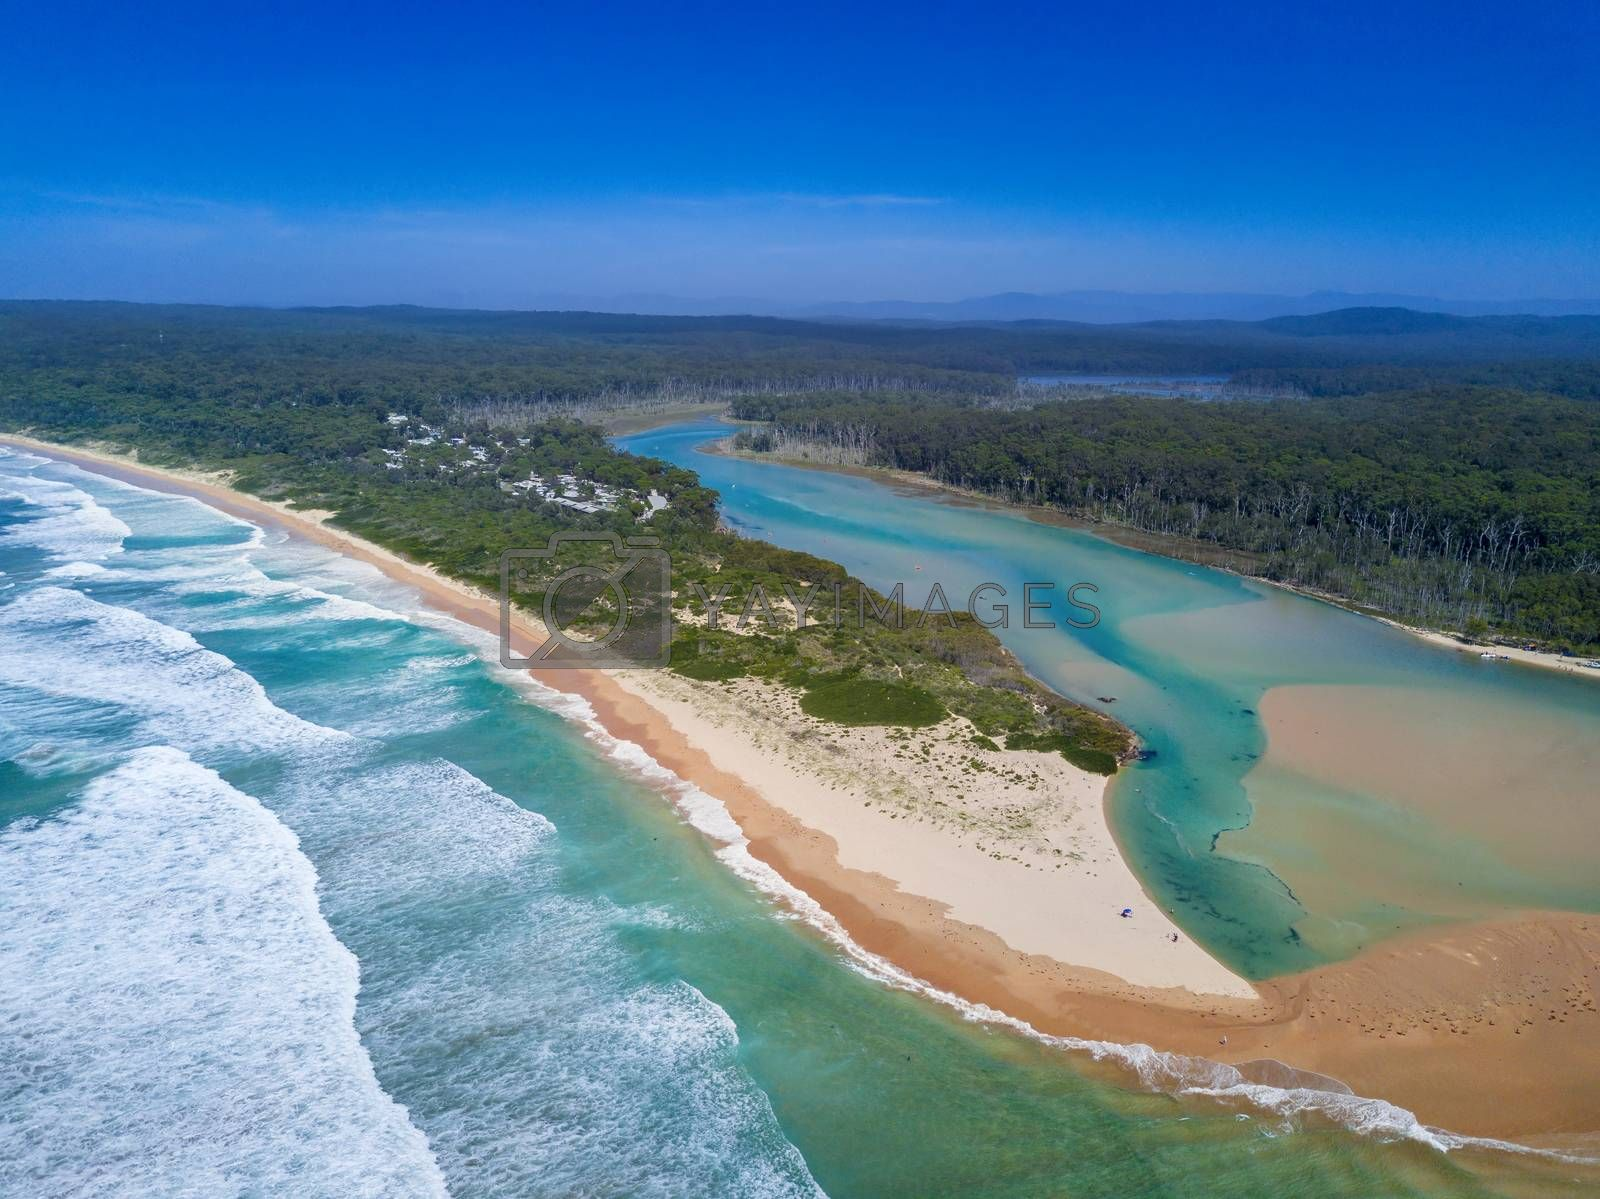 Durras lake inlet and the South Durras spit at Durras Beach on beautiful summer day